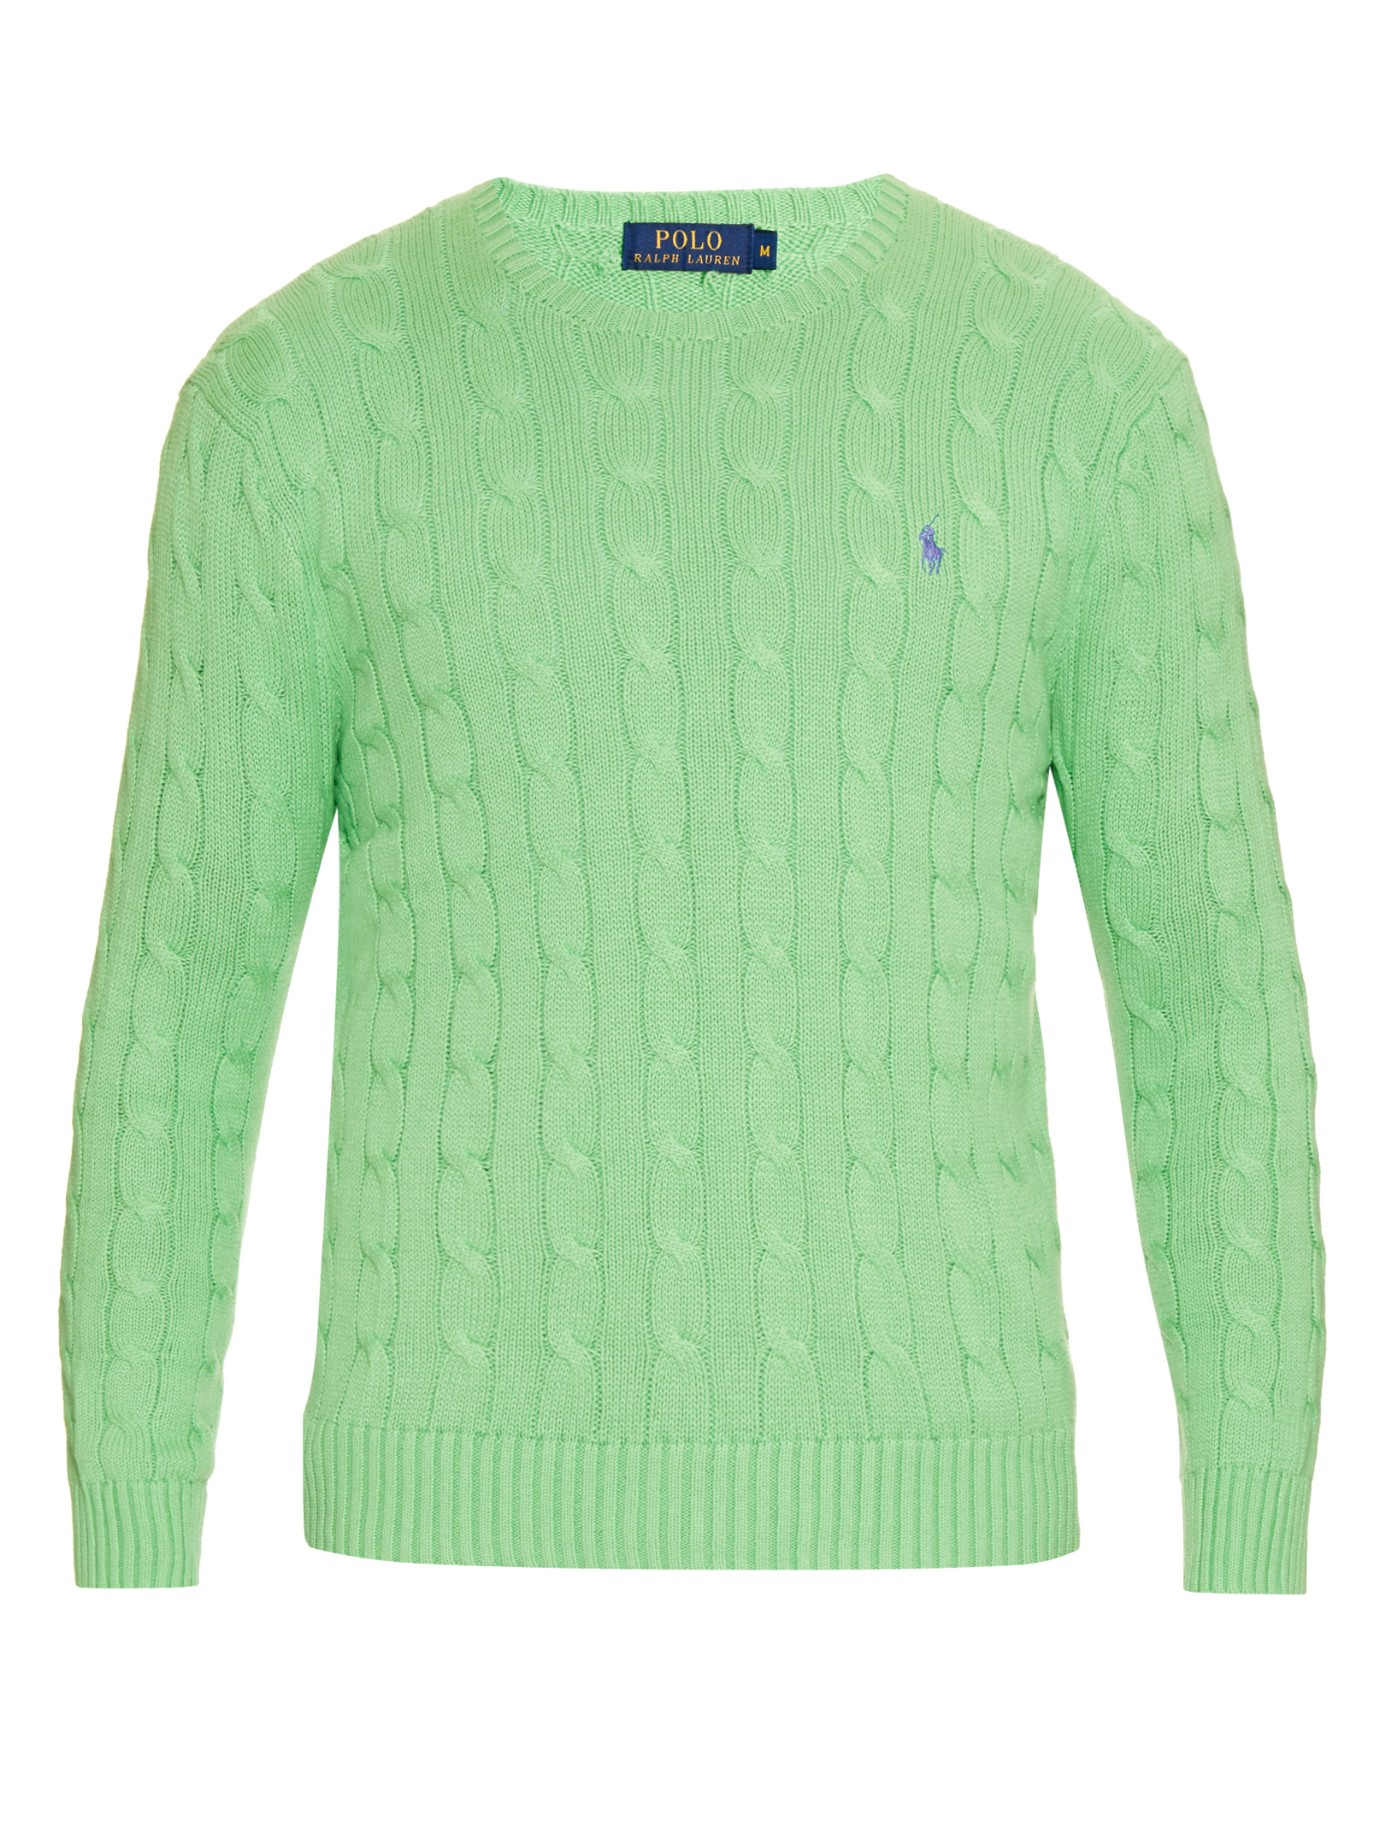 f491737d575cd6 Lyst - Polo Ralph Lauren Cable-knit Cotton Sweater in Green for Men